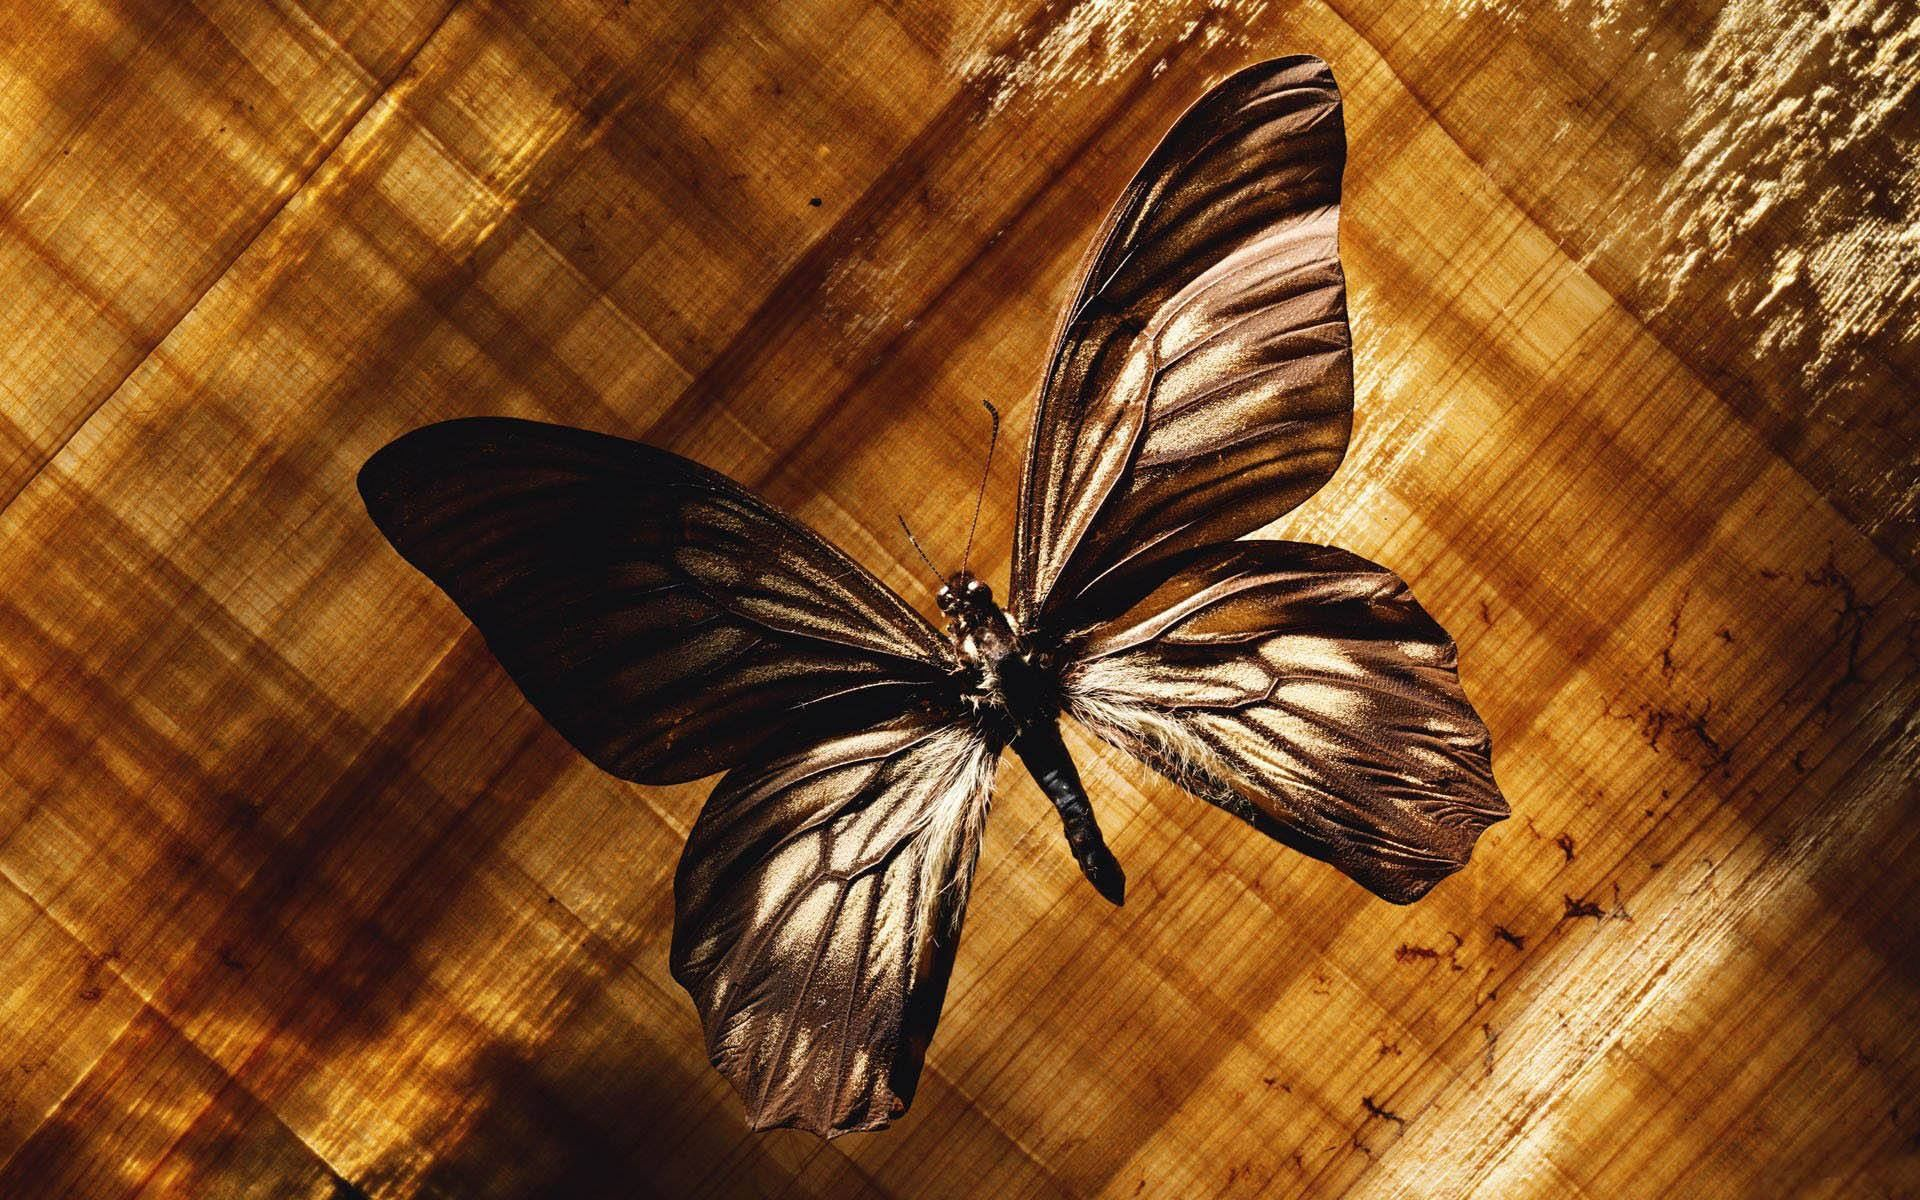 Pin by Patricia Disotell on Butterflies!! :)   Insect ...